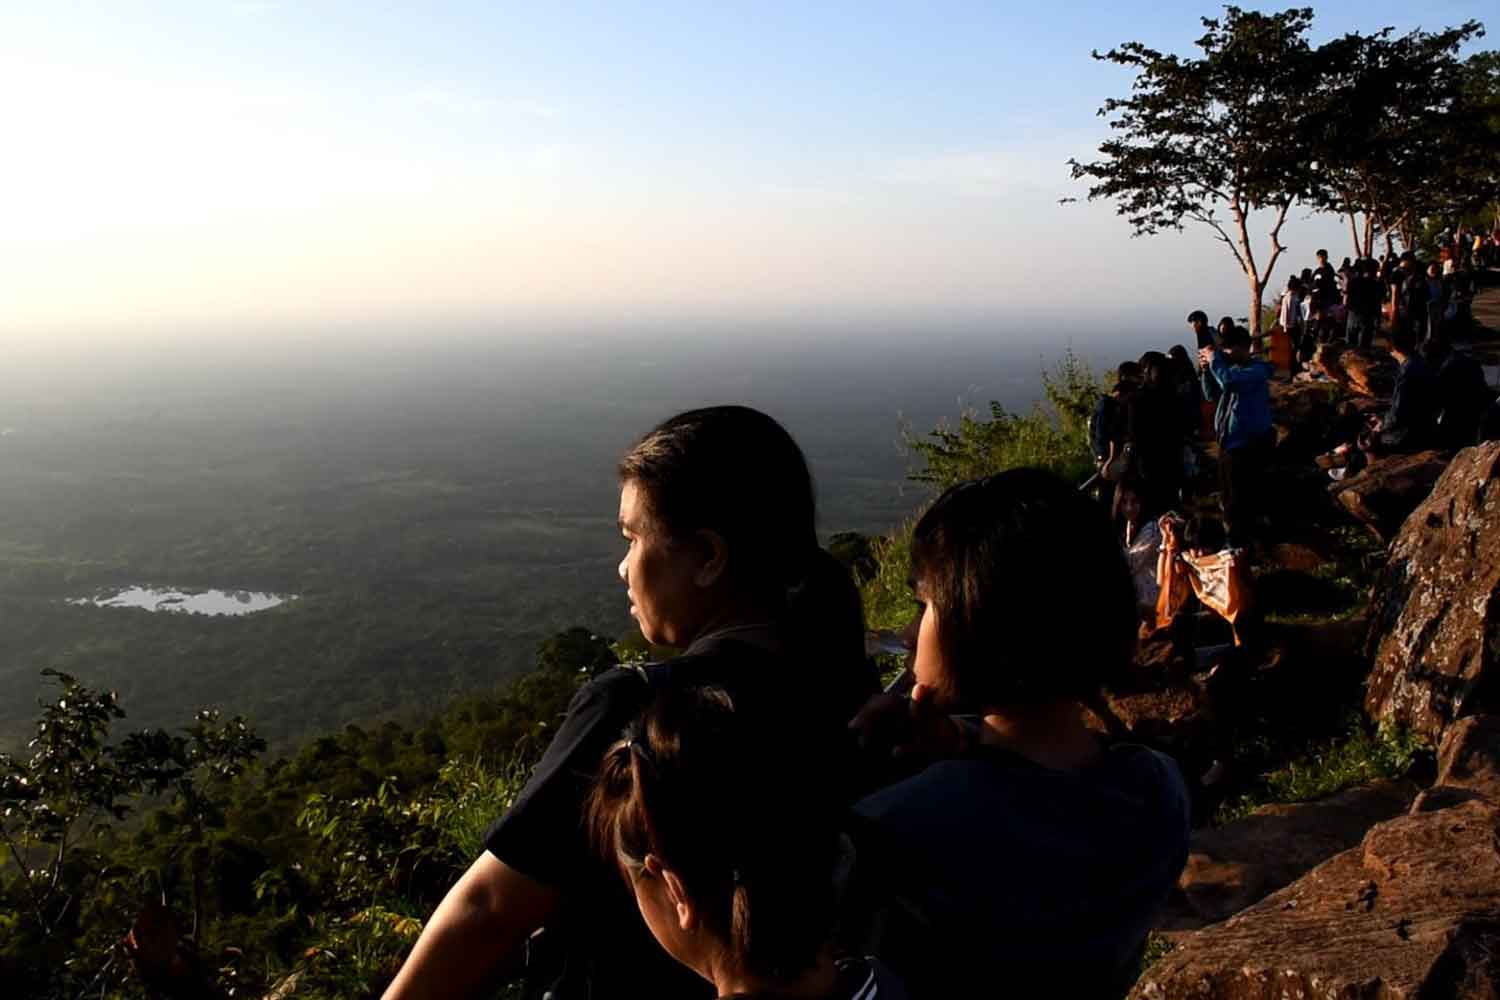 Tourists experience sunrise on Pha Mor E-Daeng cliff in Si Sa Ket province on Sunday. The Meteorological Department has announced the beginning of winter this Thursday. (Photo by Sanoh Worarak)